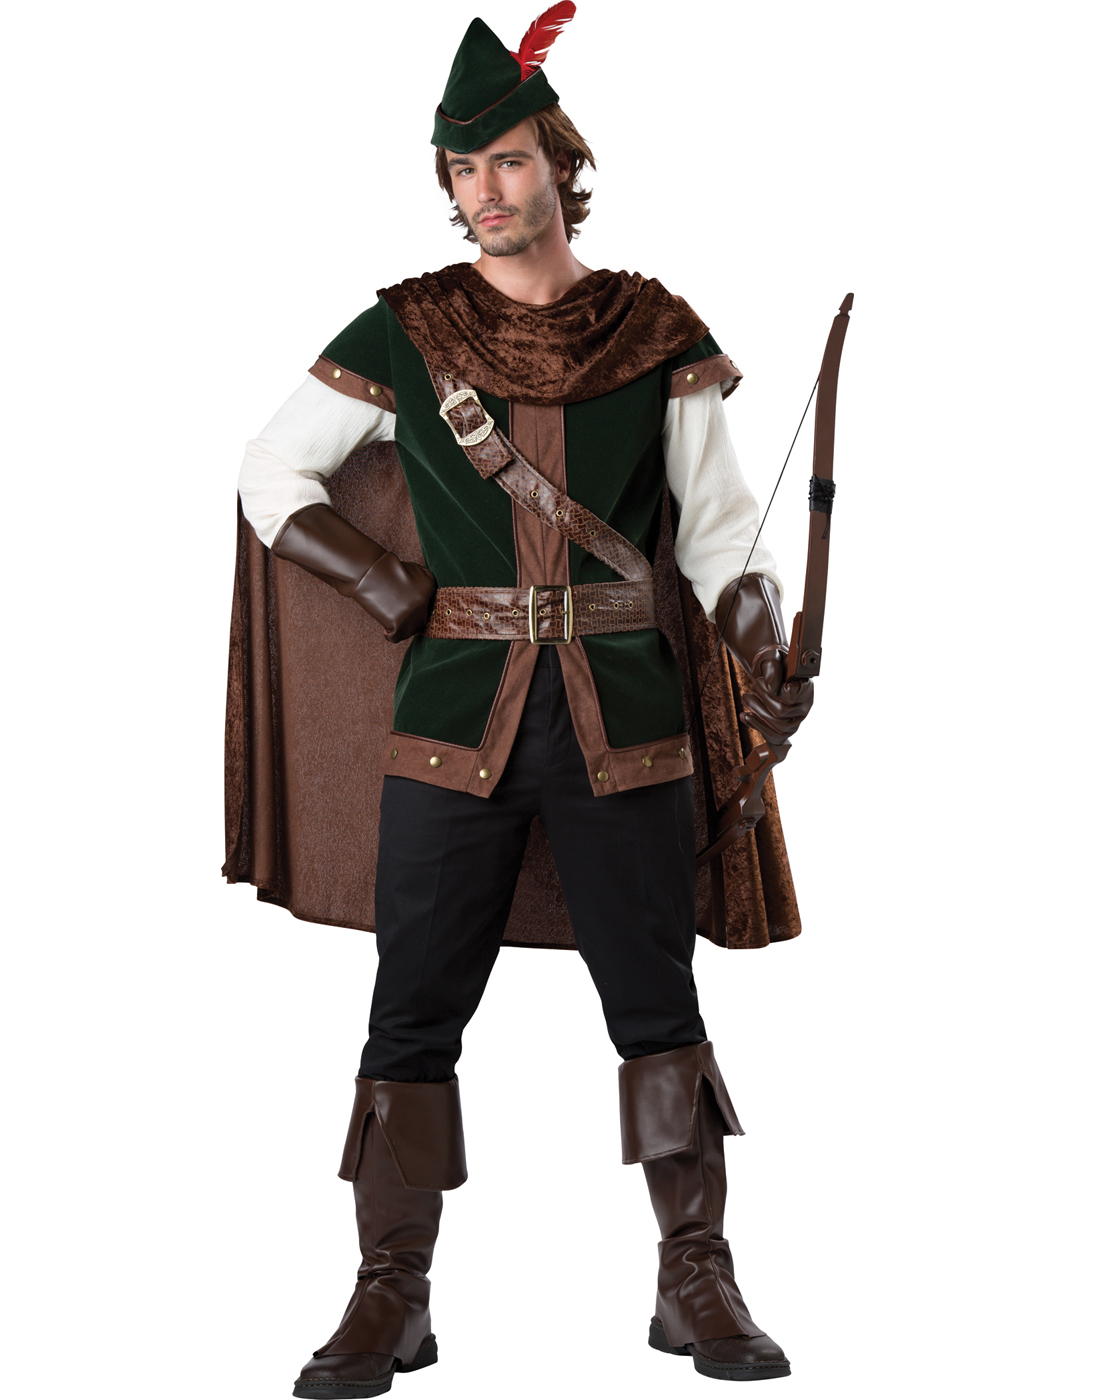 Robin Hood Medieval Warrior Prince Of Thieves Renaissance Adult Mens Costume  sc 1 st  Walmart & Robin Hood Medieval Warrior Prince Of Thieves Renaissance Adult Mens ...